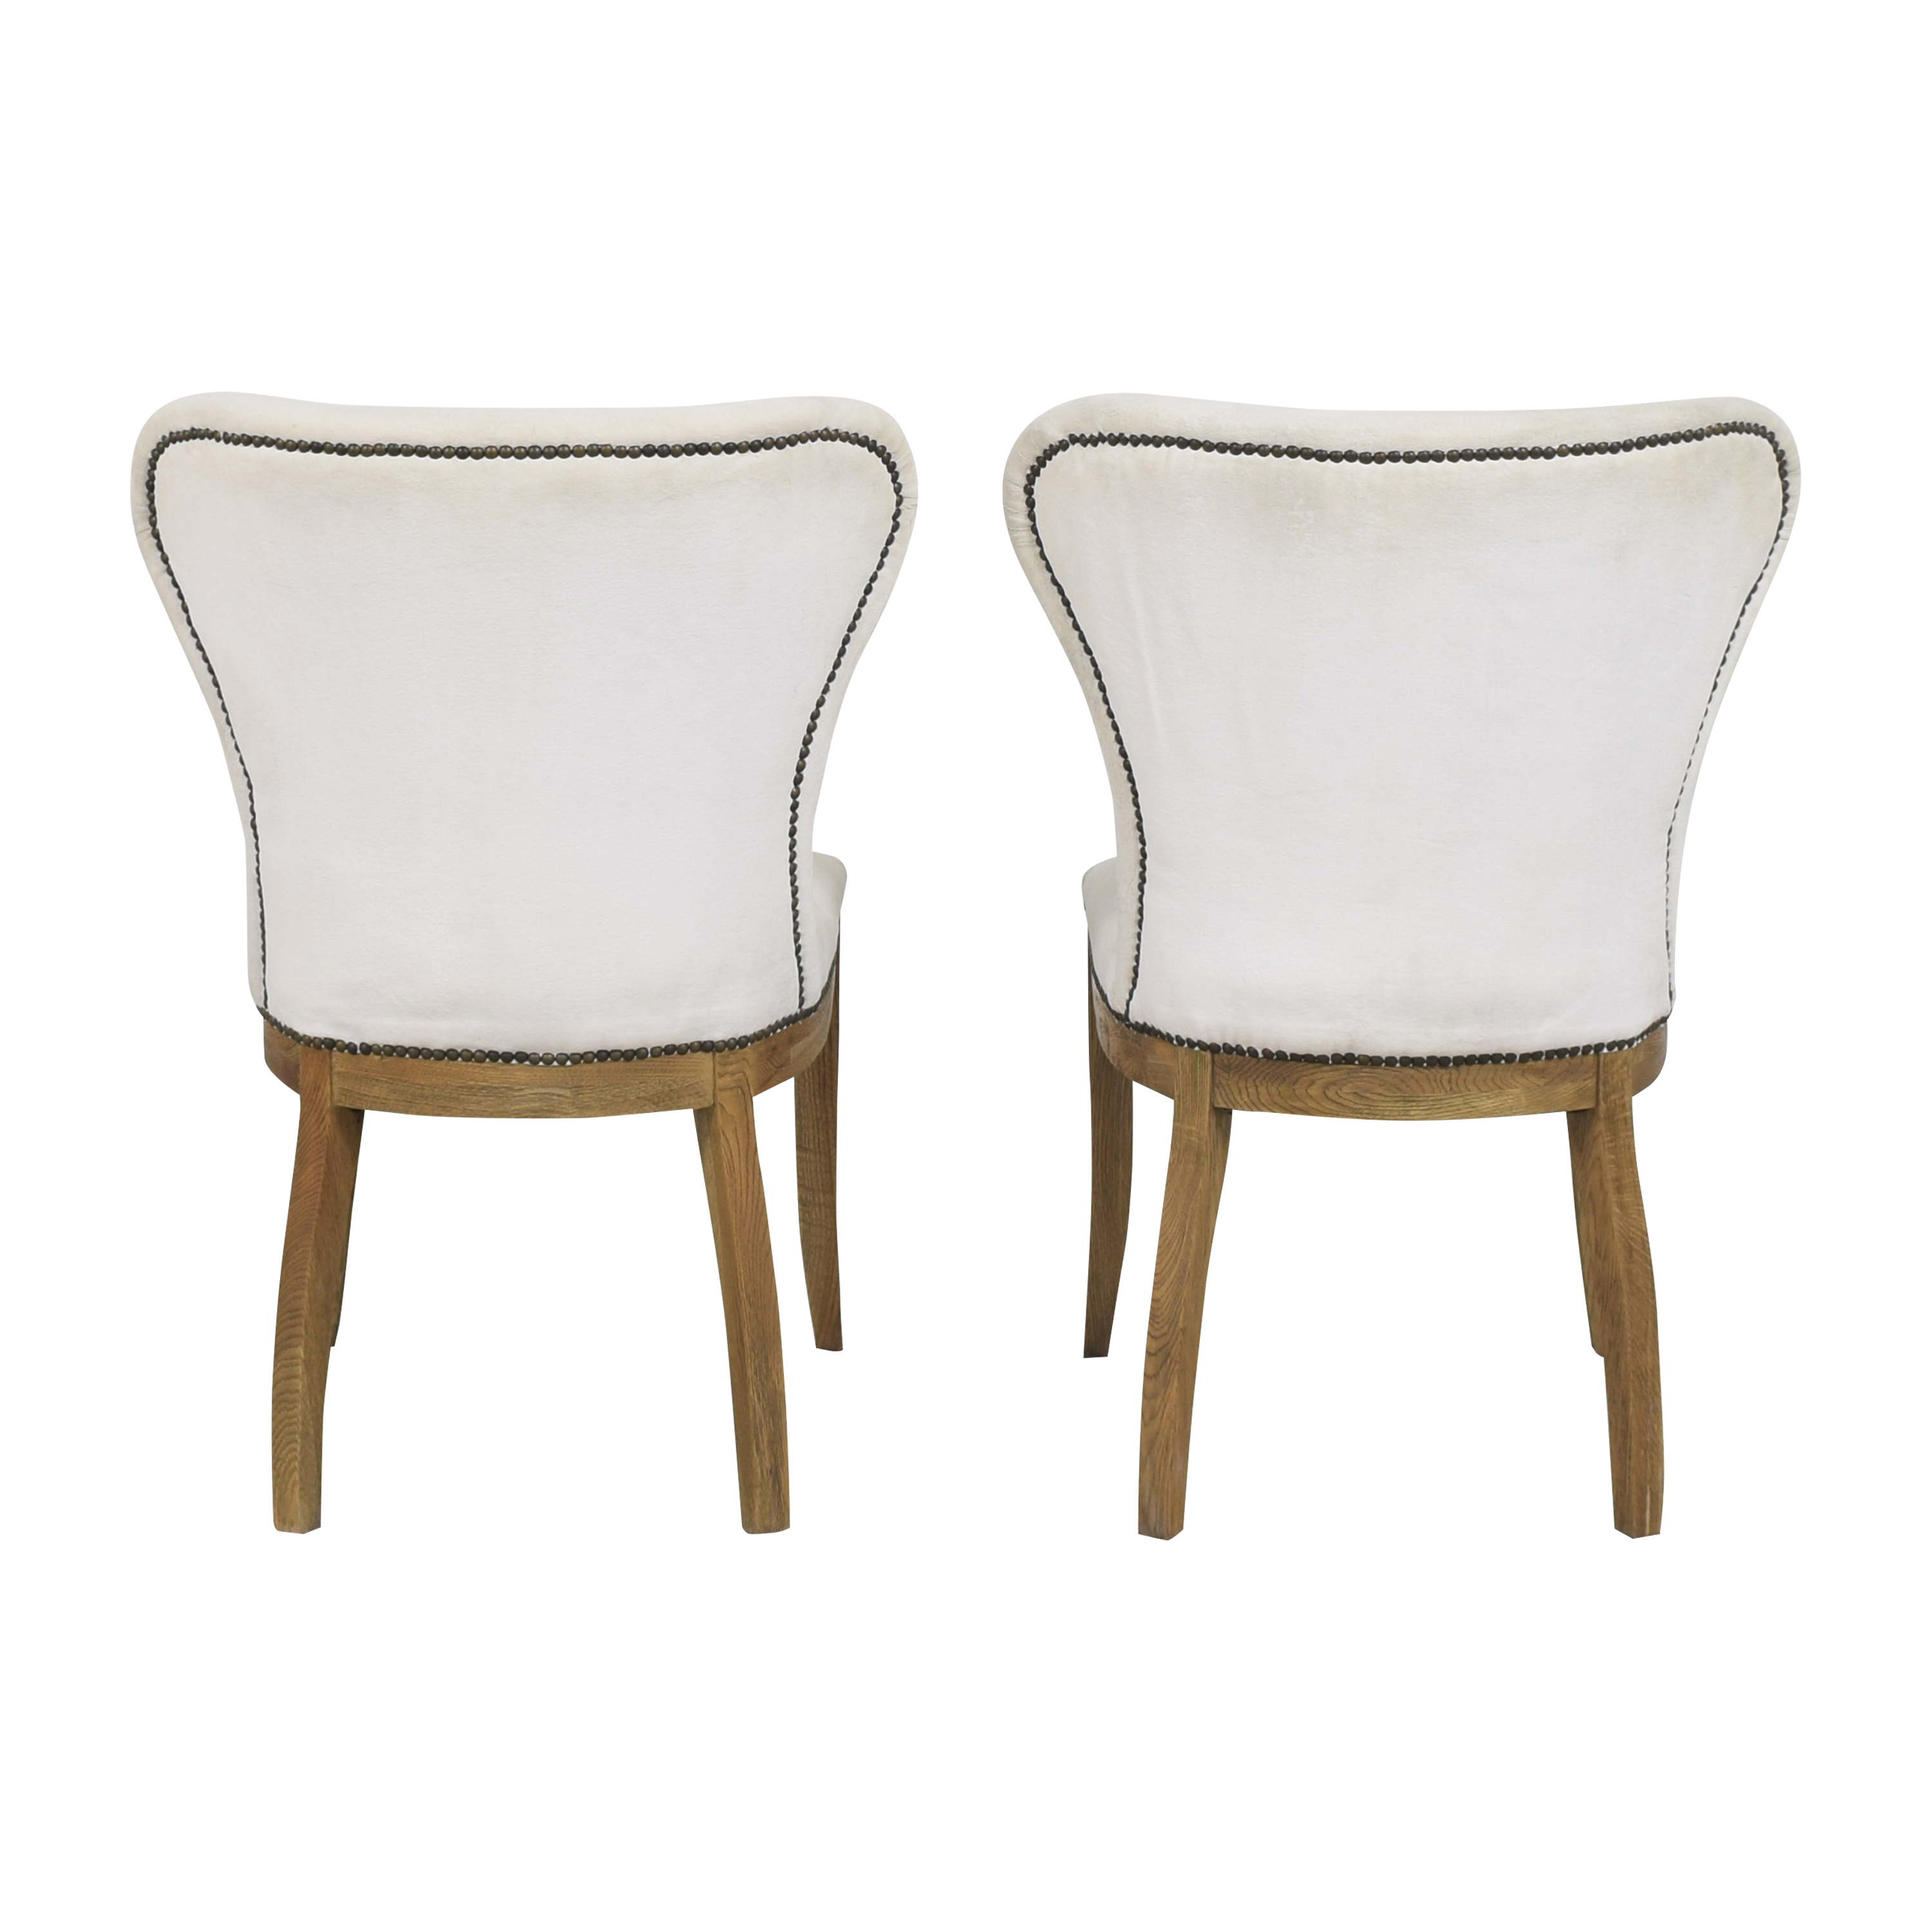 Restoration Hardware Restoration Hardware Upholstered Dining Chairs Dining Chairs